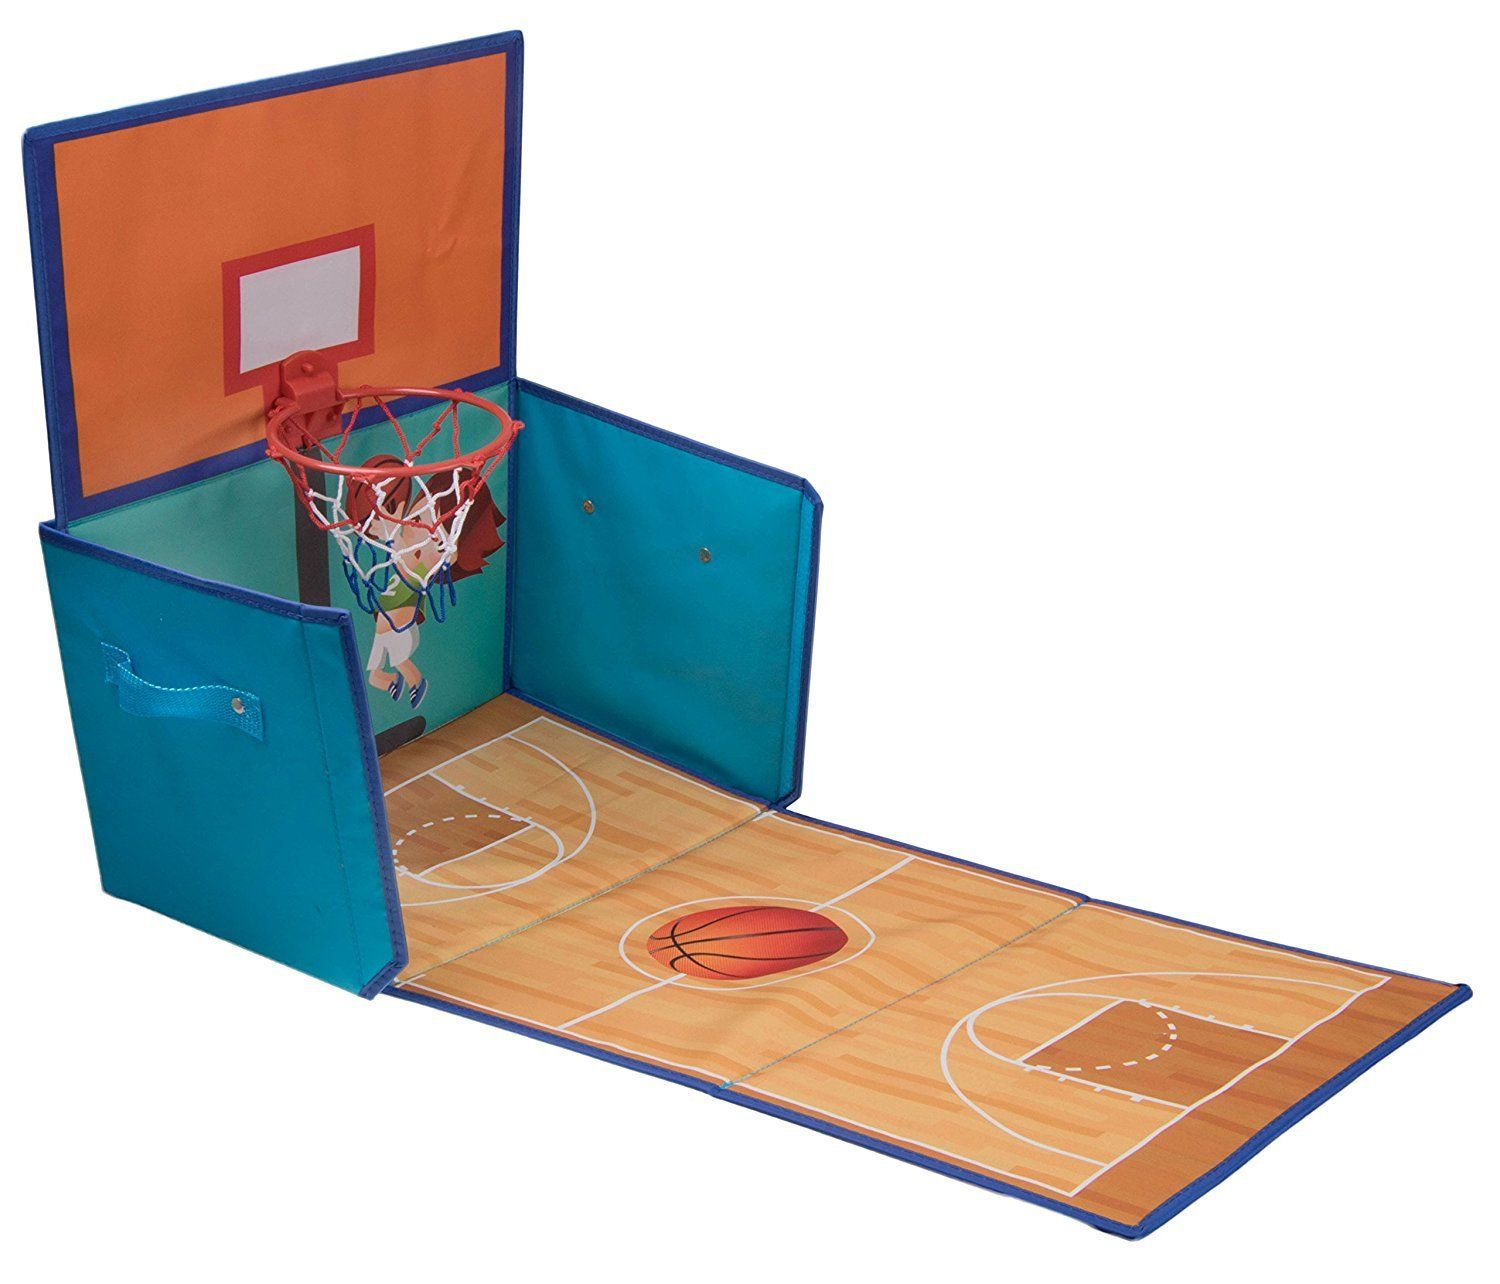 folding basketball hoop toy organizer by clever creations toy box